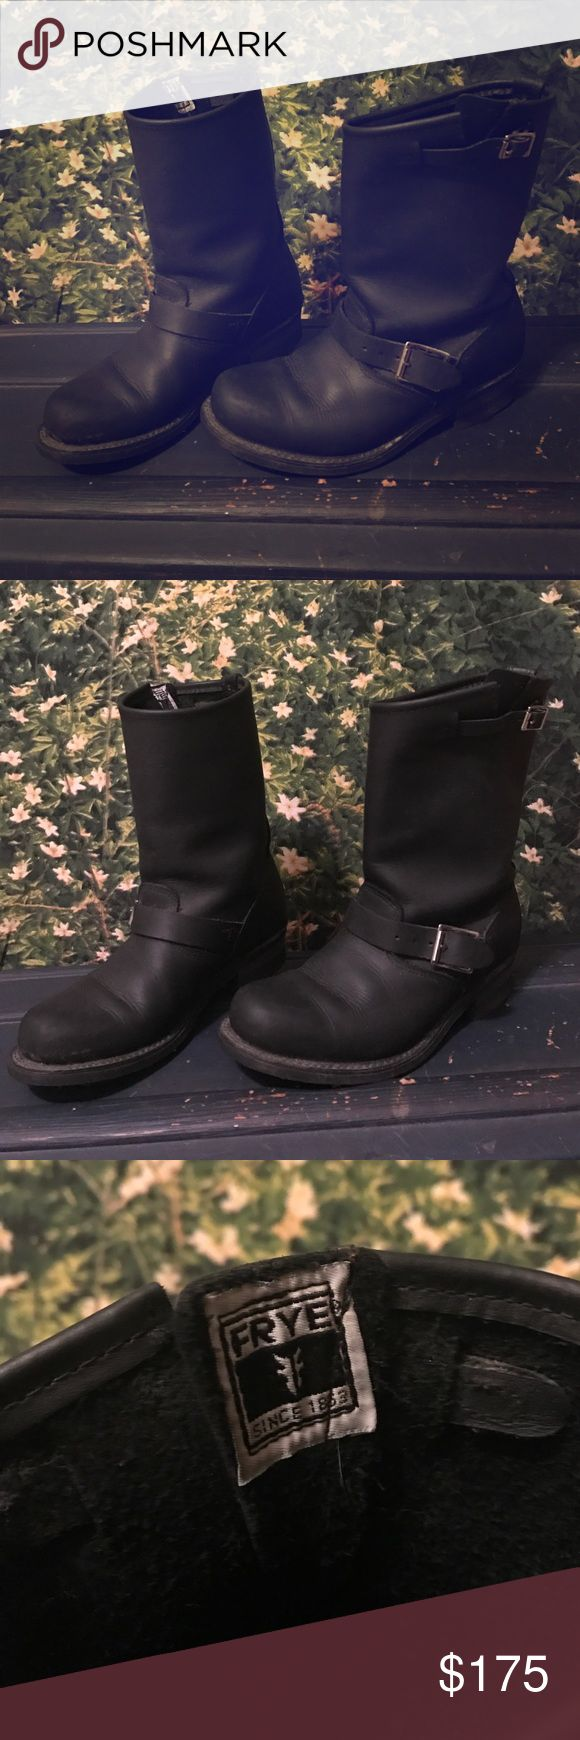 Frye engineer boots Black Frye engineer boots. Gently used, excellent condition. Size 8.5 Frye Shoes Combat & Moto Boots